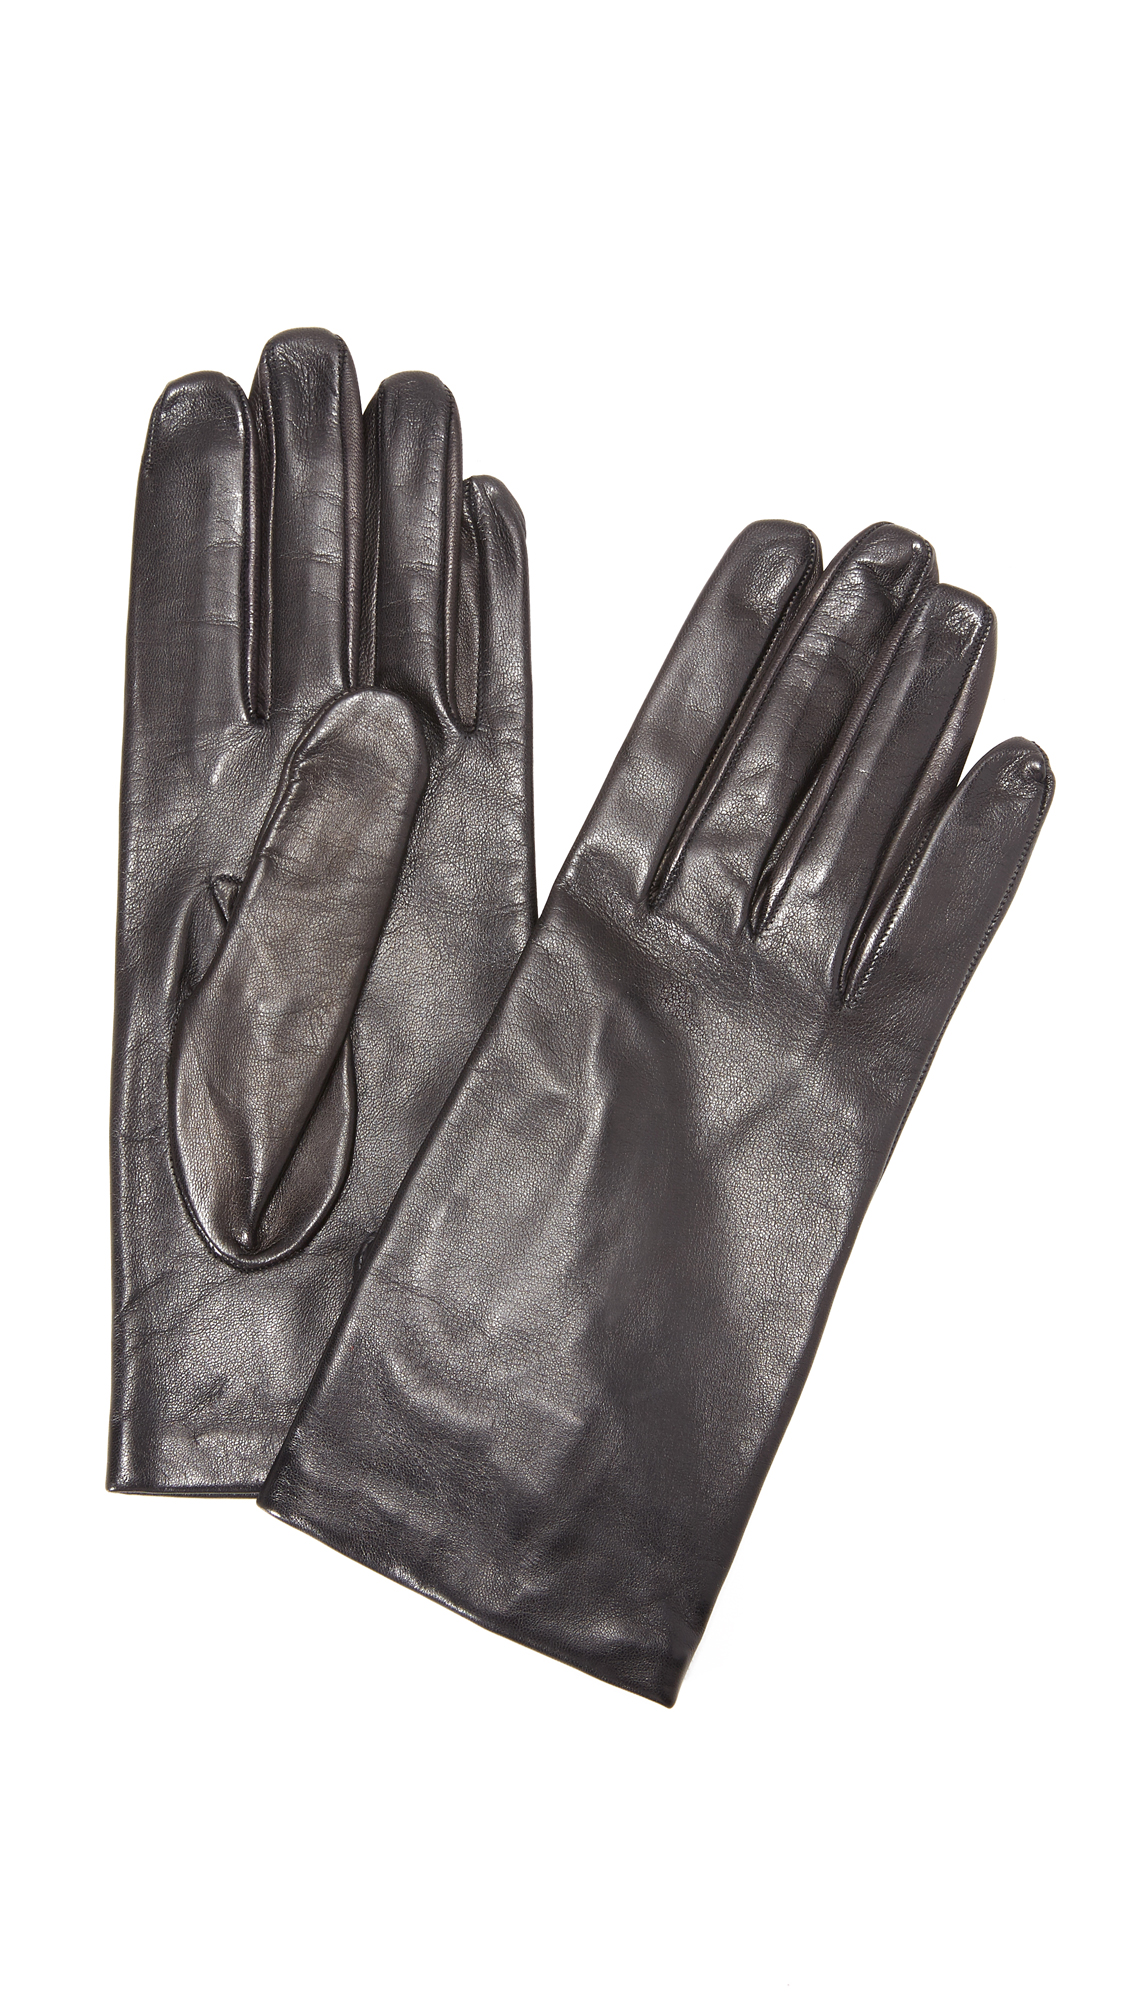 Carolina Amato Full Leather Gloves - Black